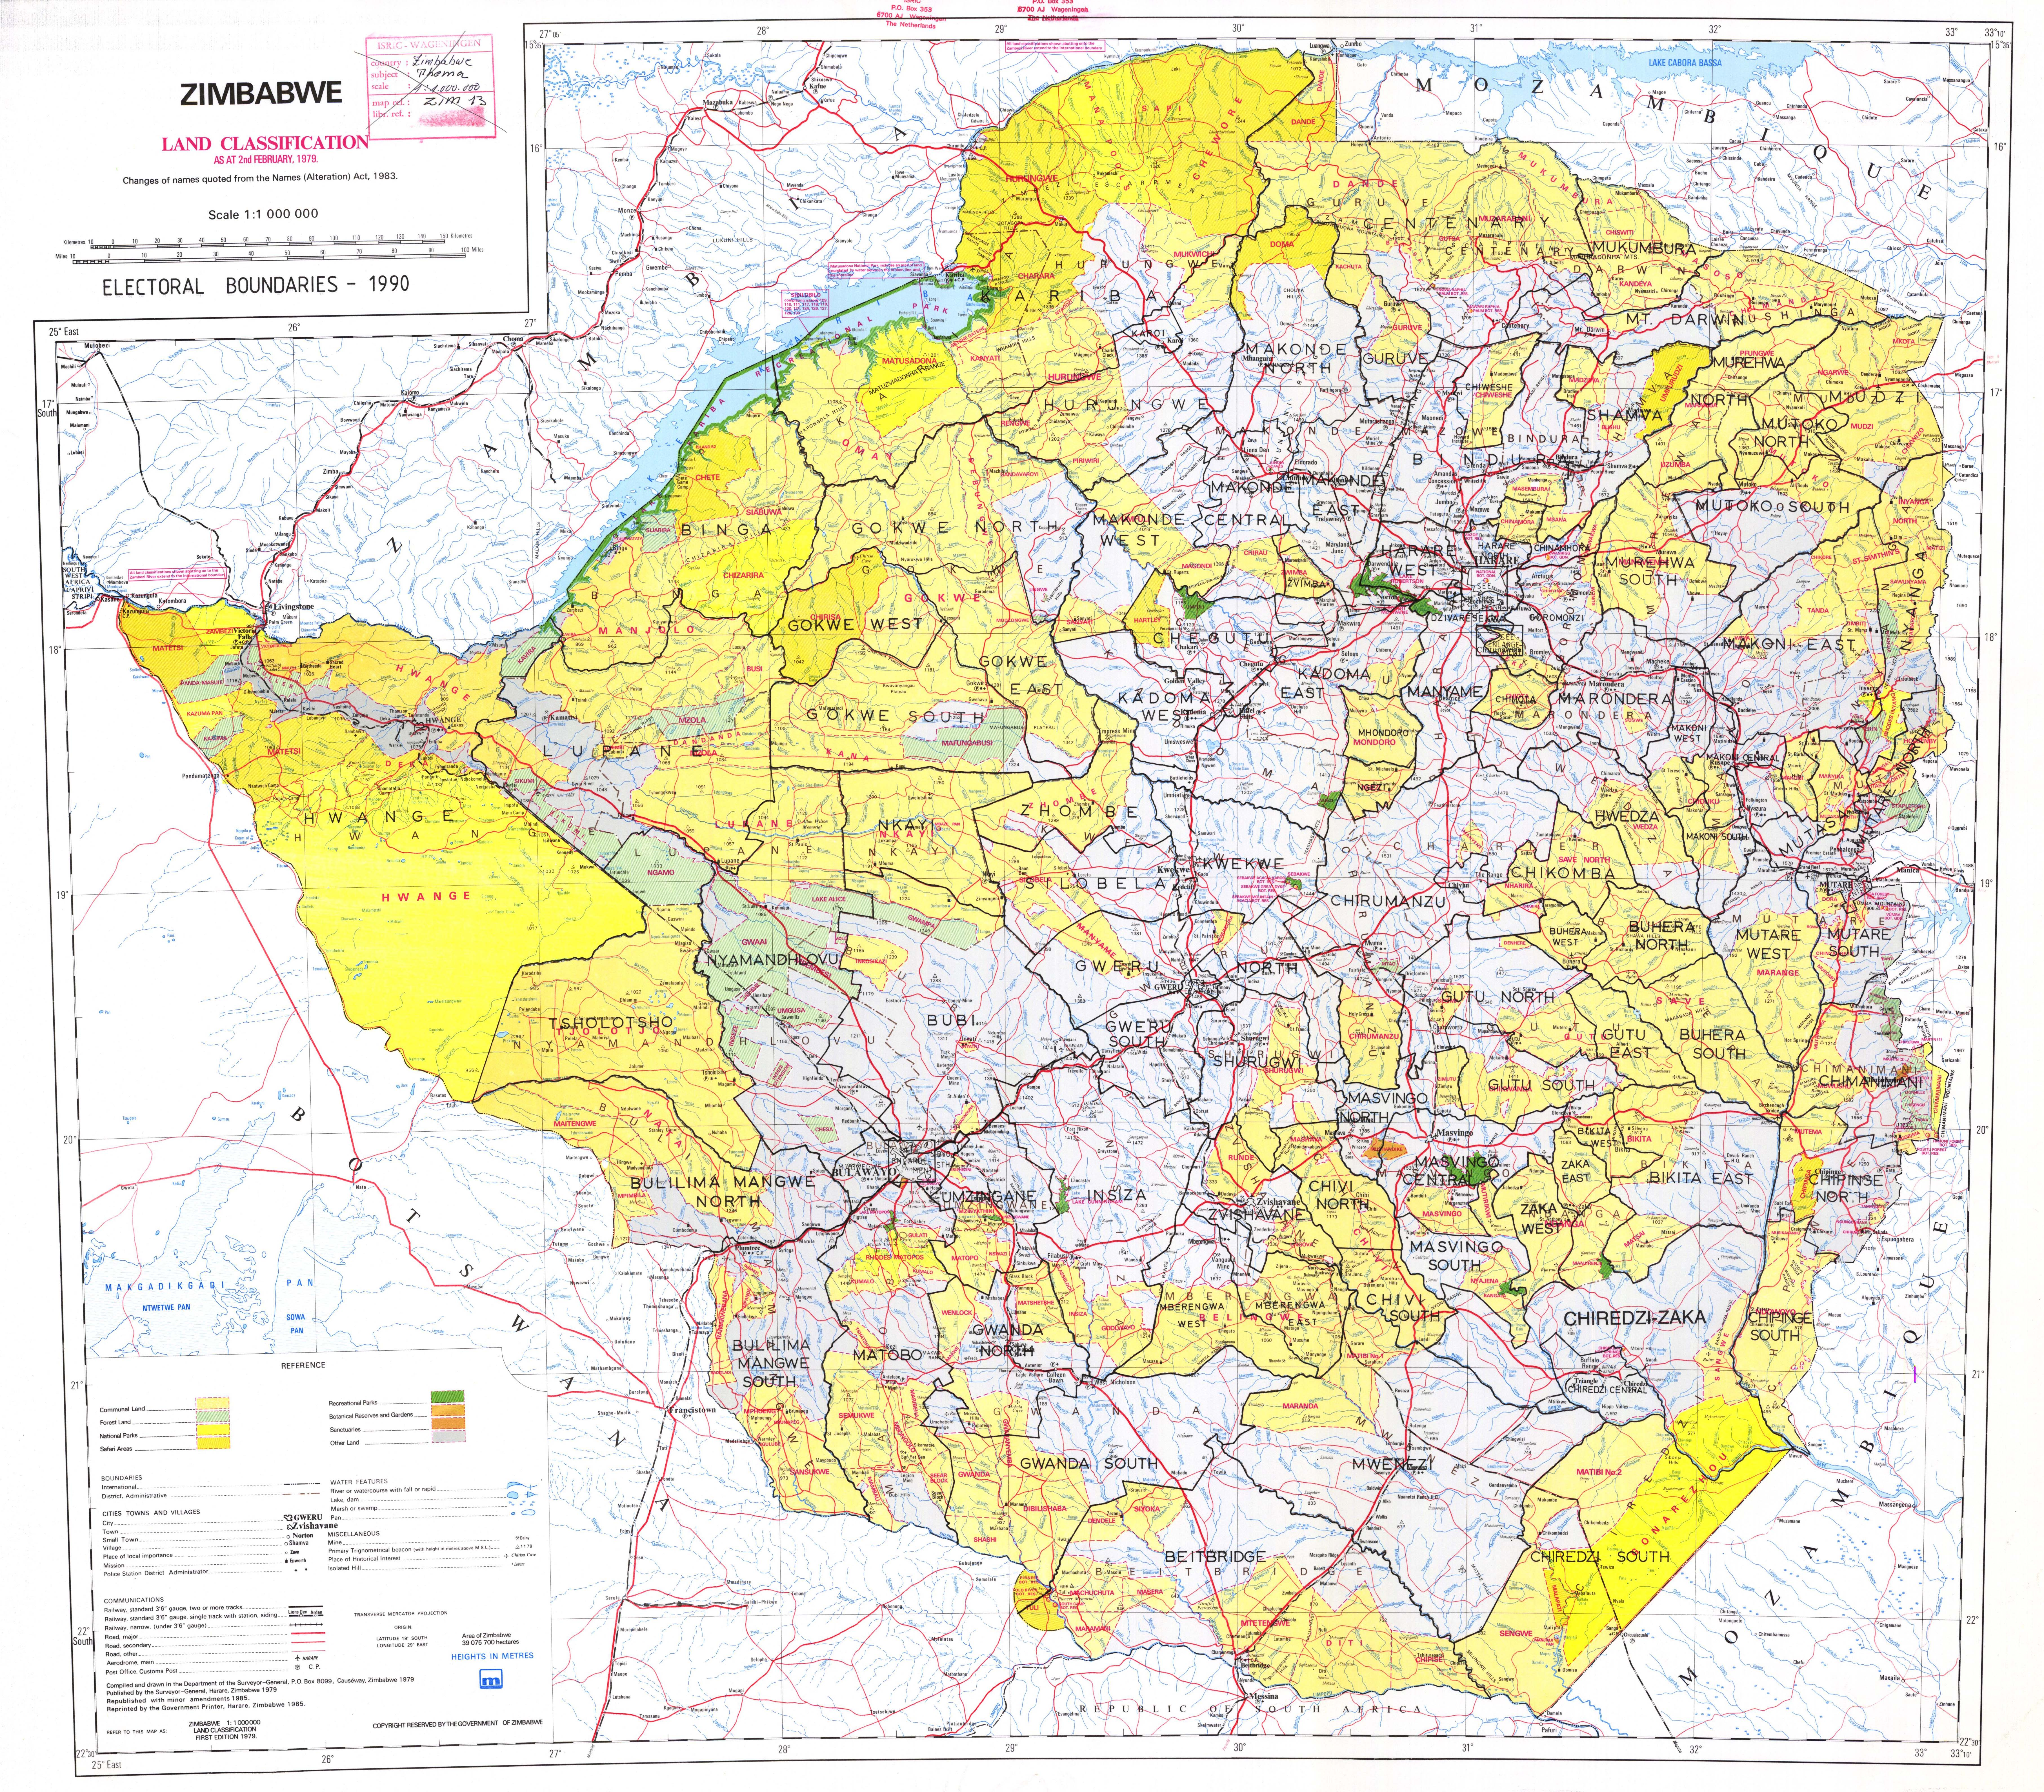 Topographic Map Zimbabwe.The Soil Maps Of Africa Display Maps